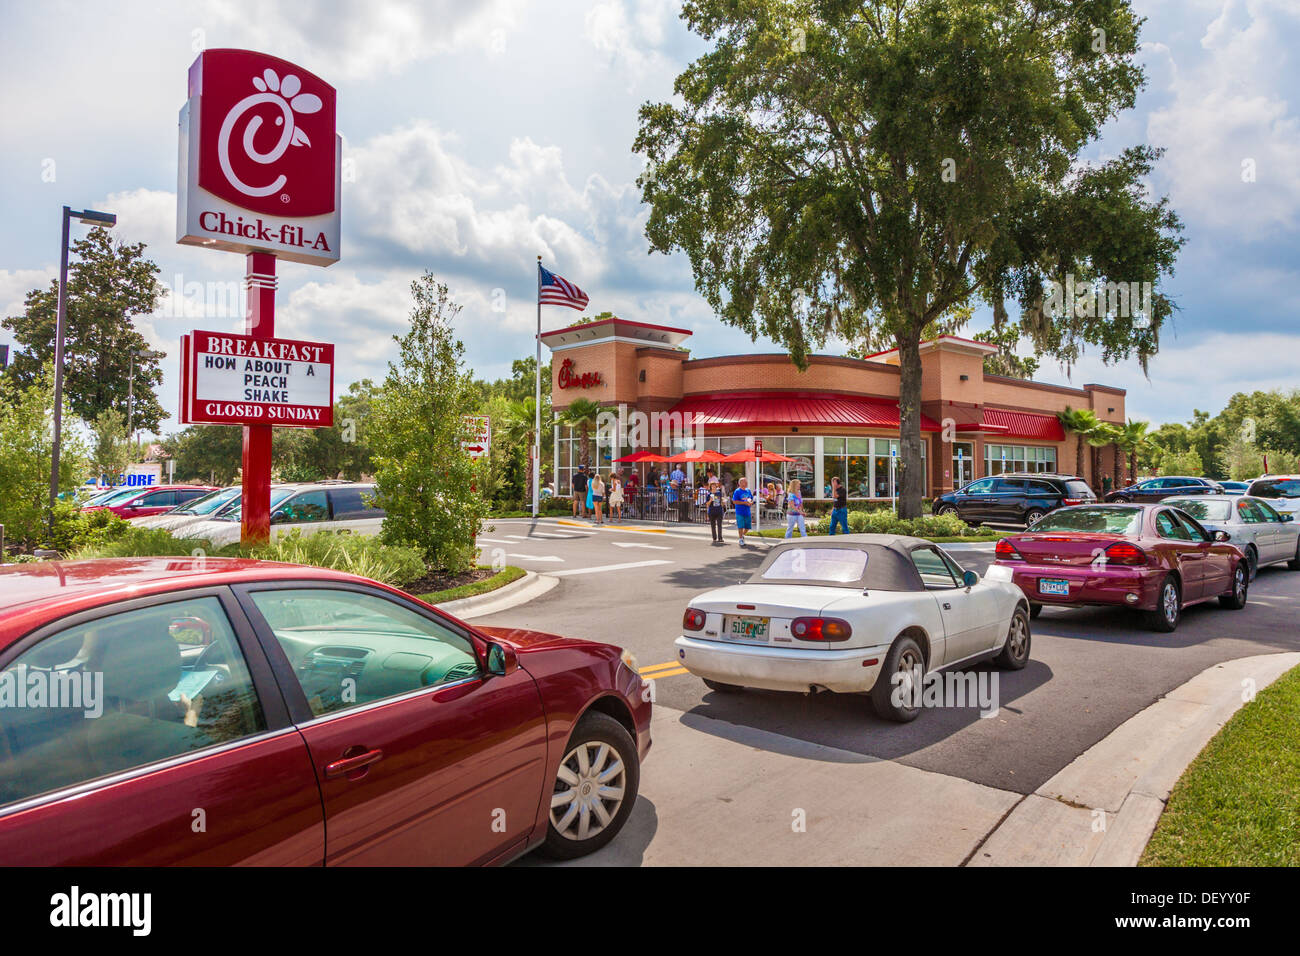 Cars lined up to the road at the Chick-fil-a fast food restaurant in Ocala, Florida in support of Christian values - Stock Image